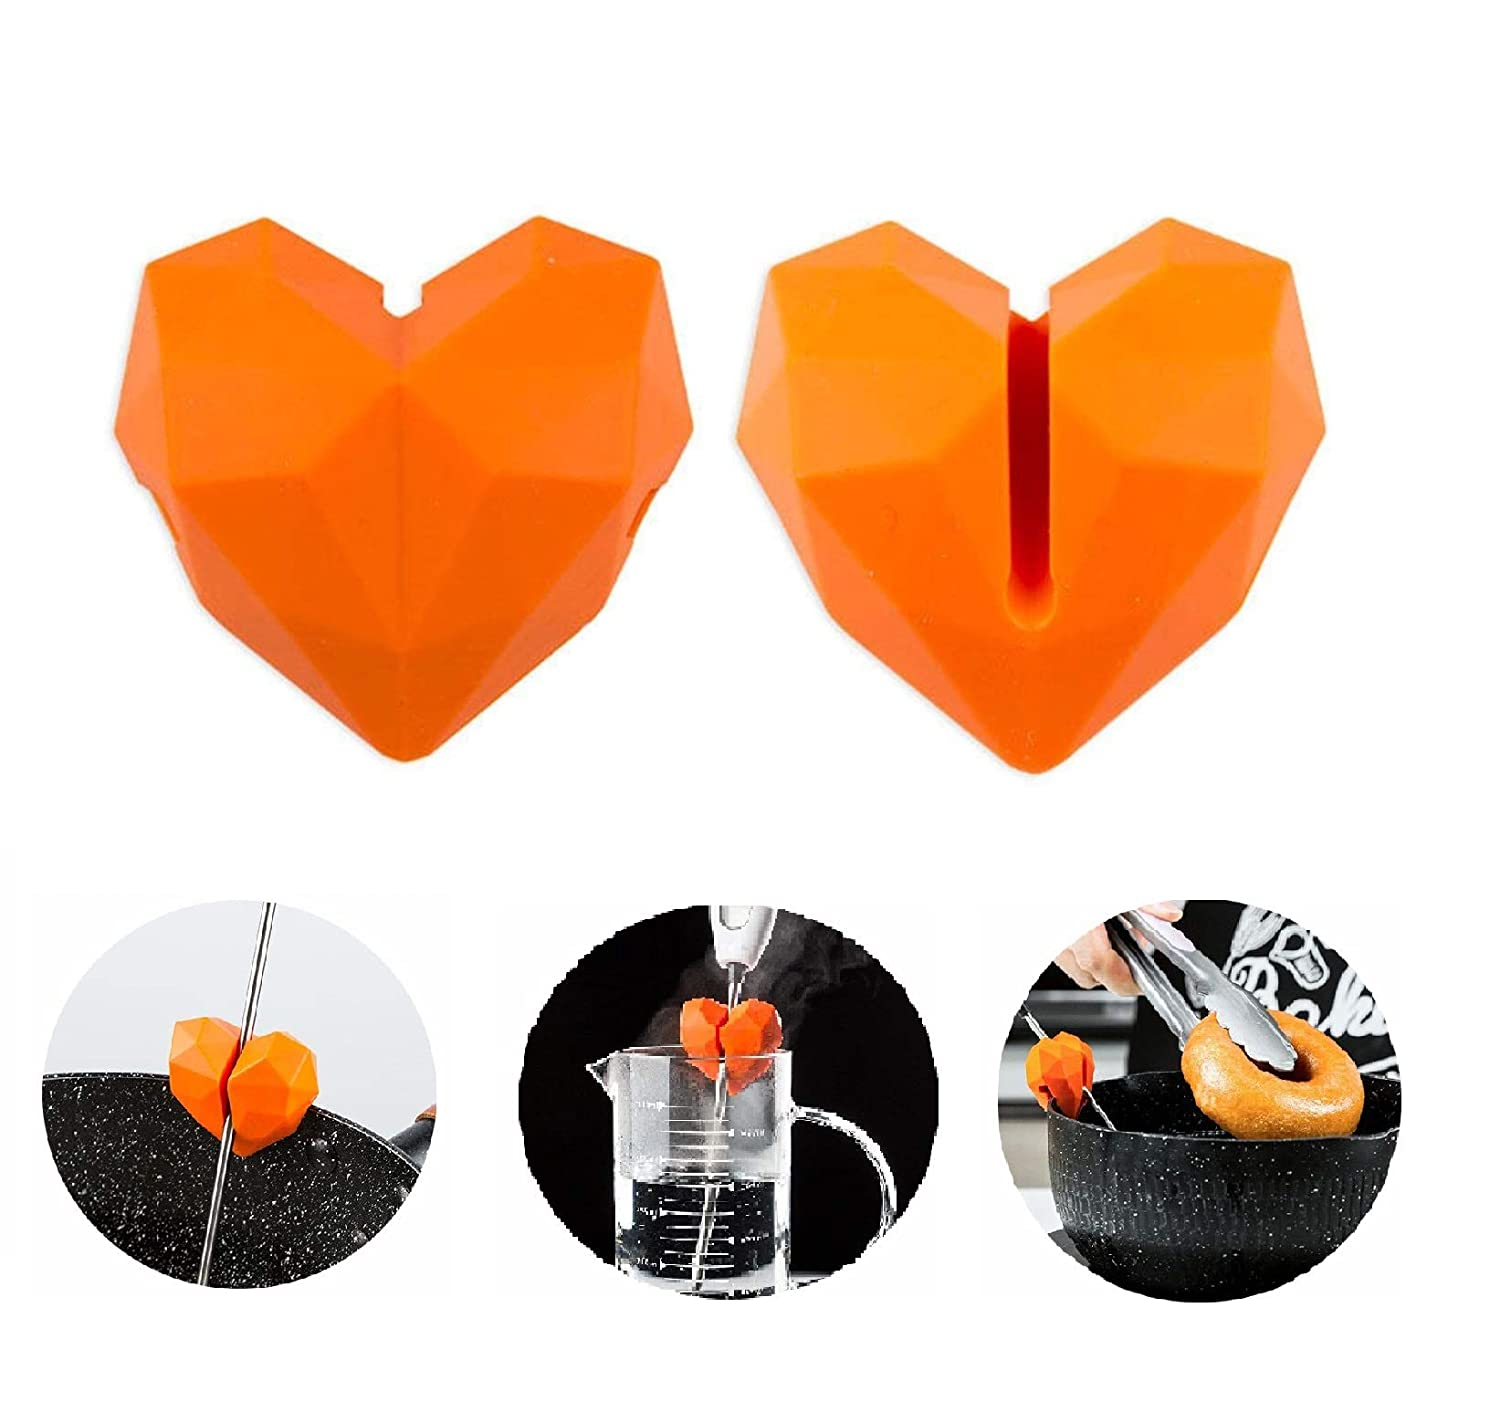 2 PCS 3D Heart Silicone Pot Clip, Candy Thermometer Probe Pot Clip Holer for Kitchen Smoker Oil Milk Temperature , Great for Deep Fryer and Candy Melting Pot,Cute Silicone Kitchen Gadgets(Orange)